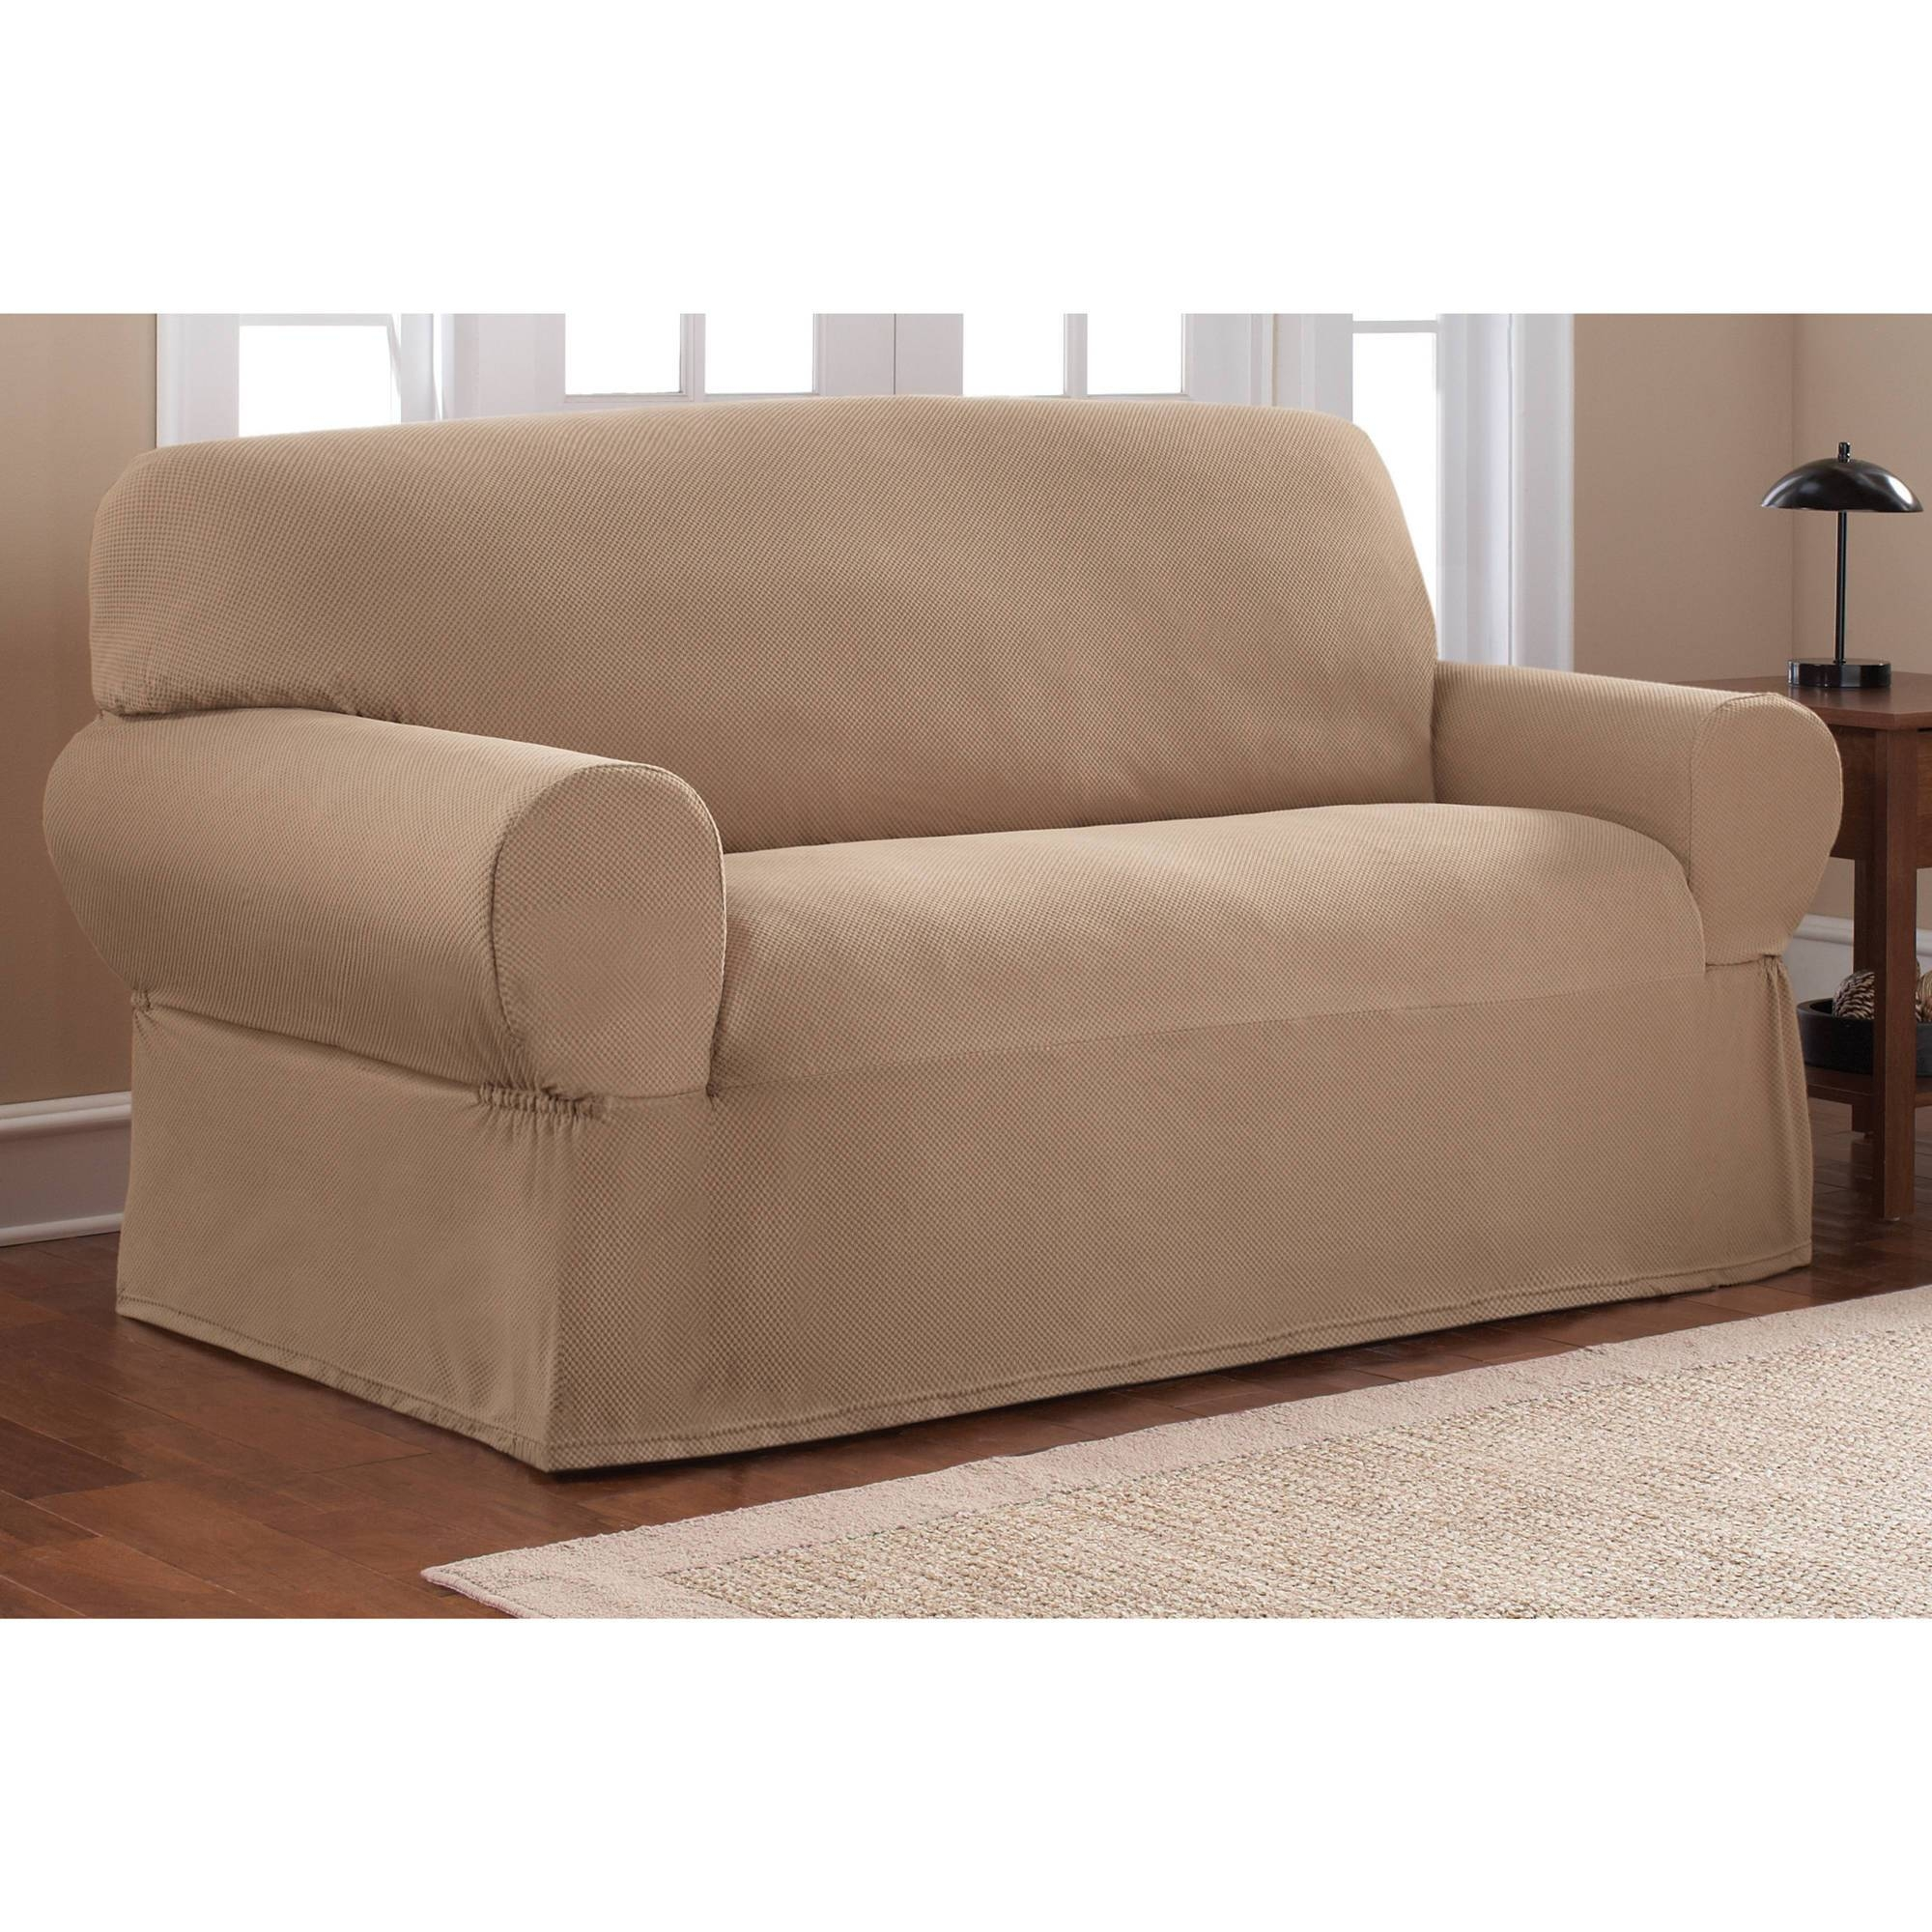 Furniture: Slipcover Loveseat T Cushion | Loveseat Slipcovers In with regard to Loveseat Slipcovers T-Cushion (Image 5 of 15)